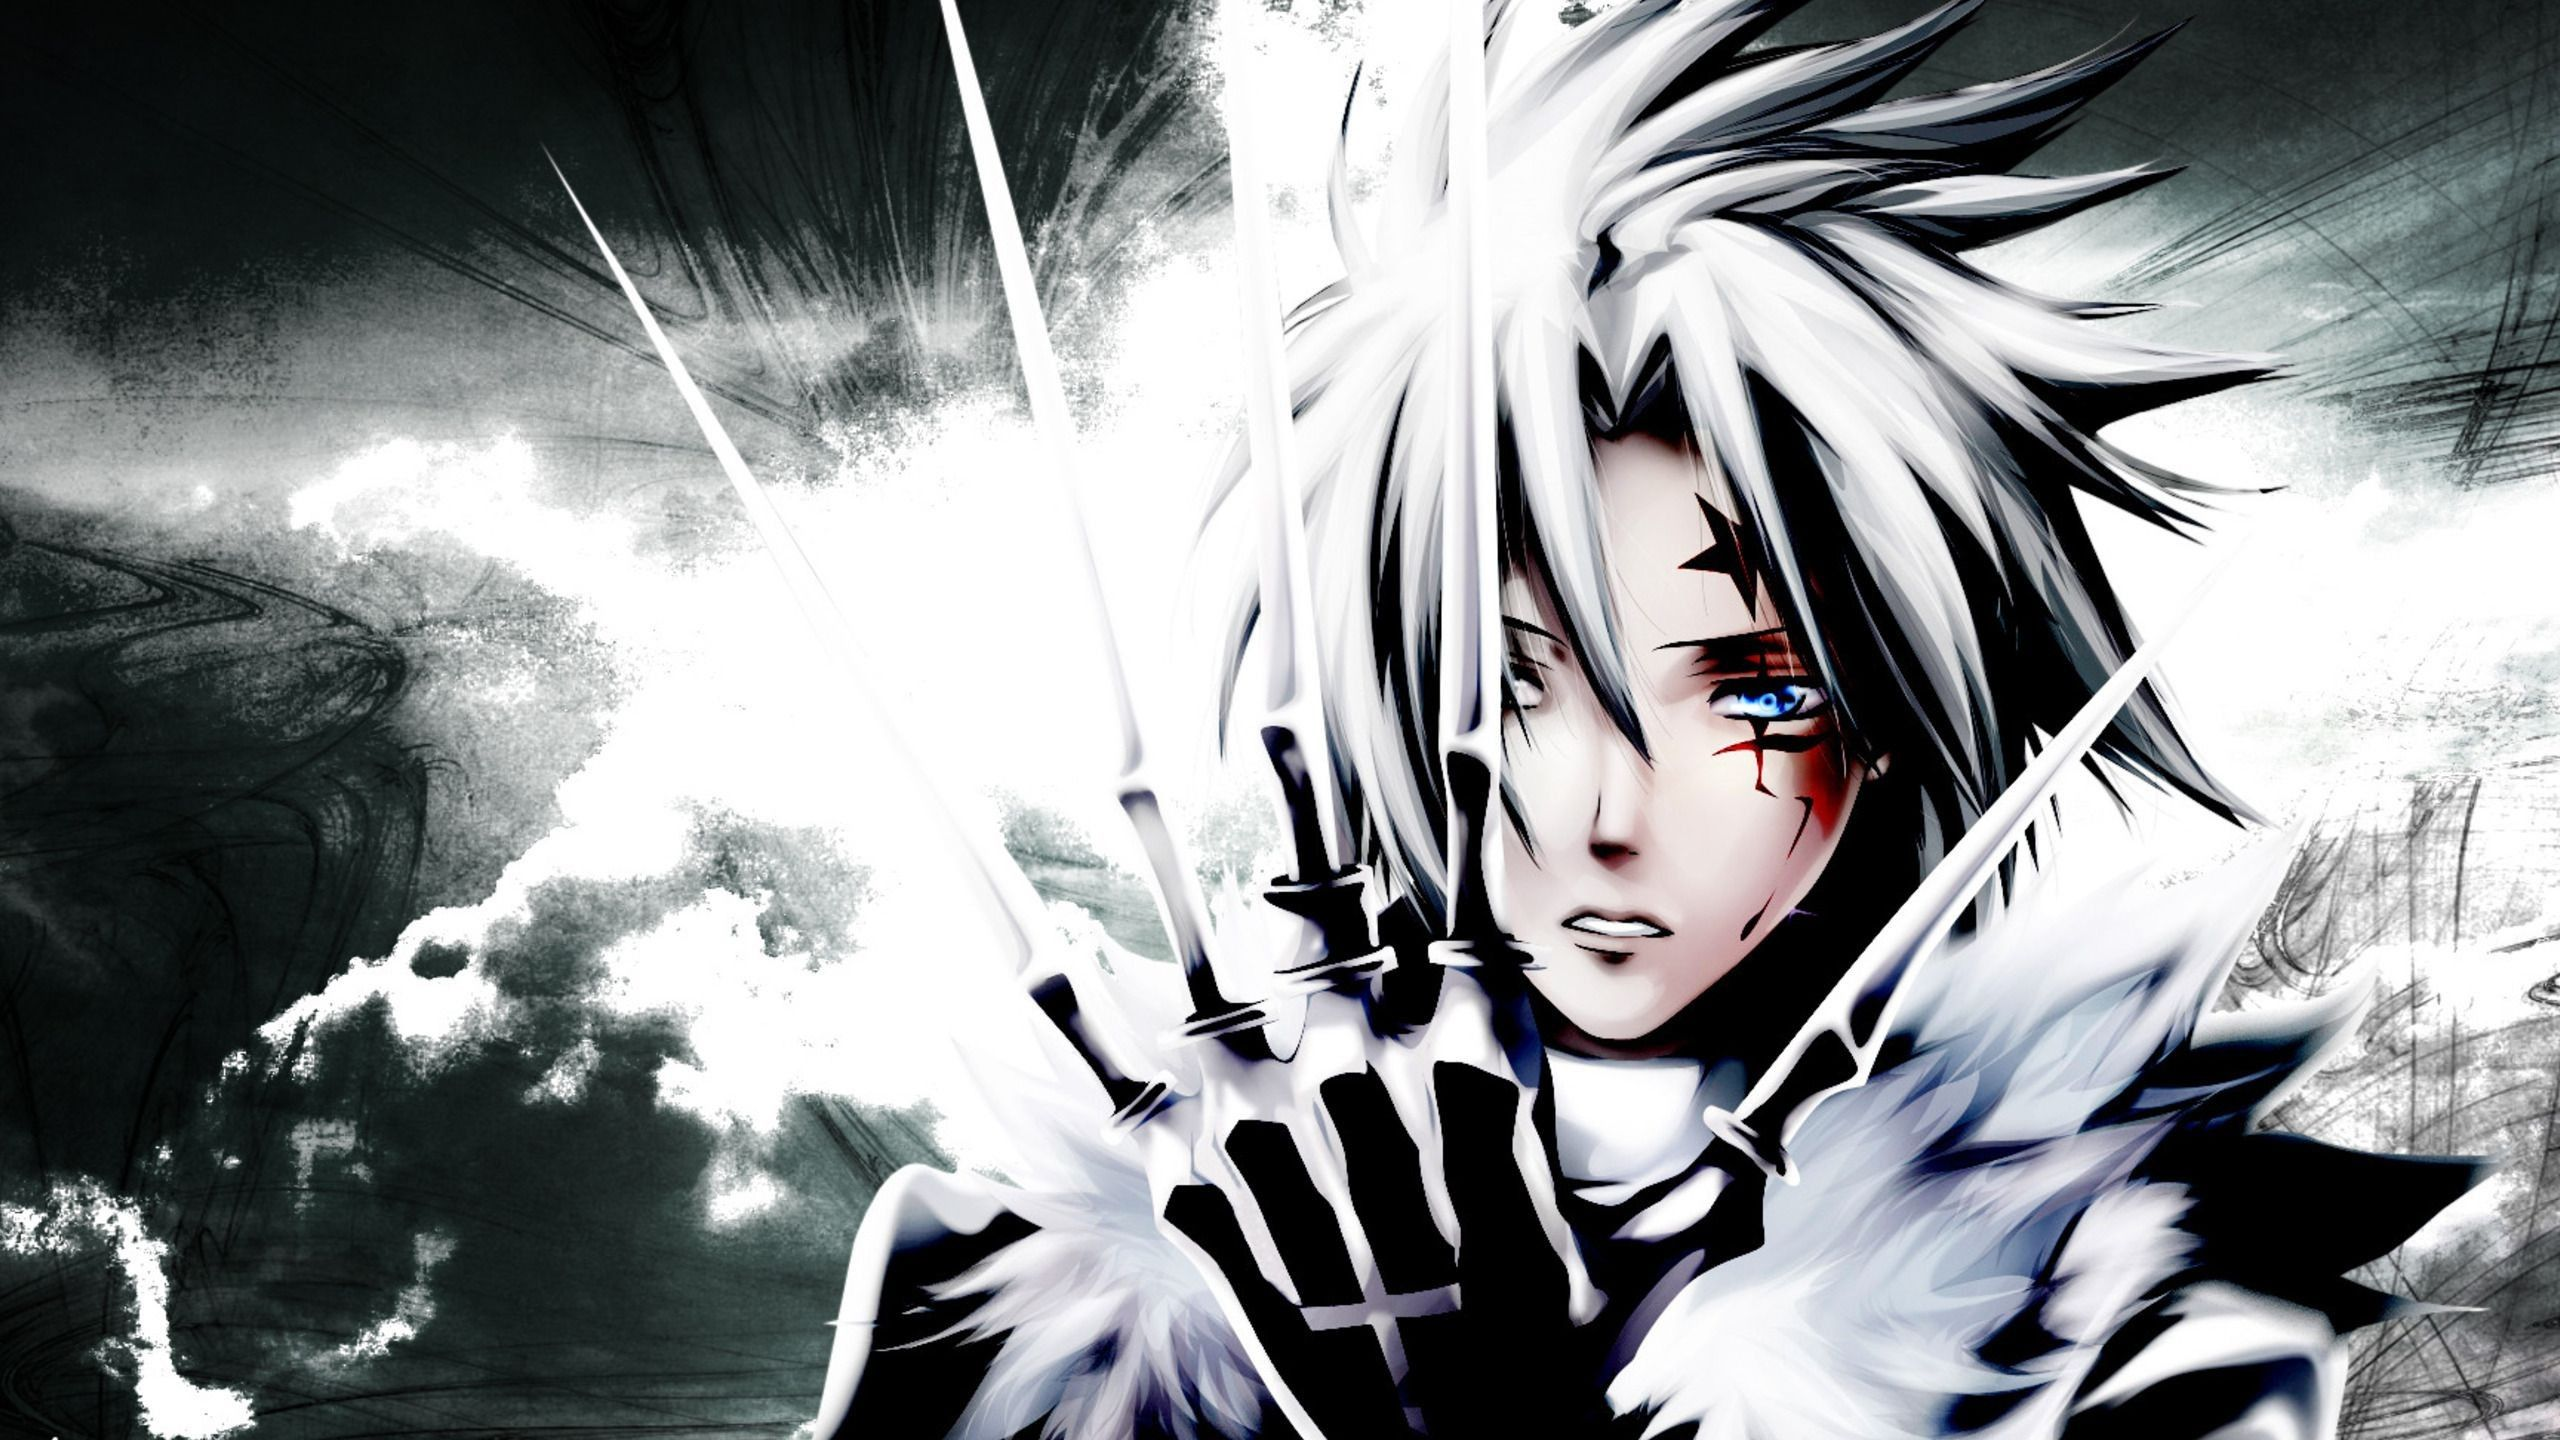 Alien Walker Cool anime wallpapers, D gray man, Anime